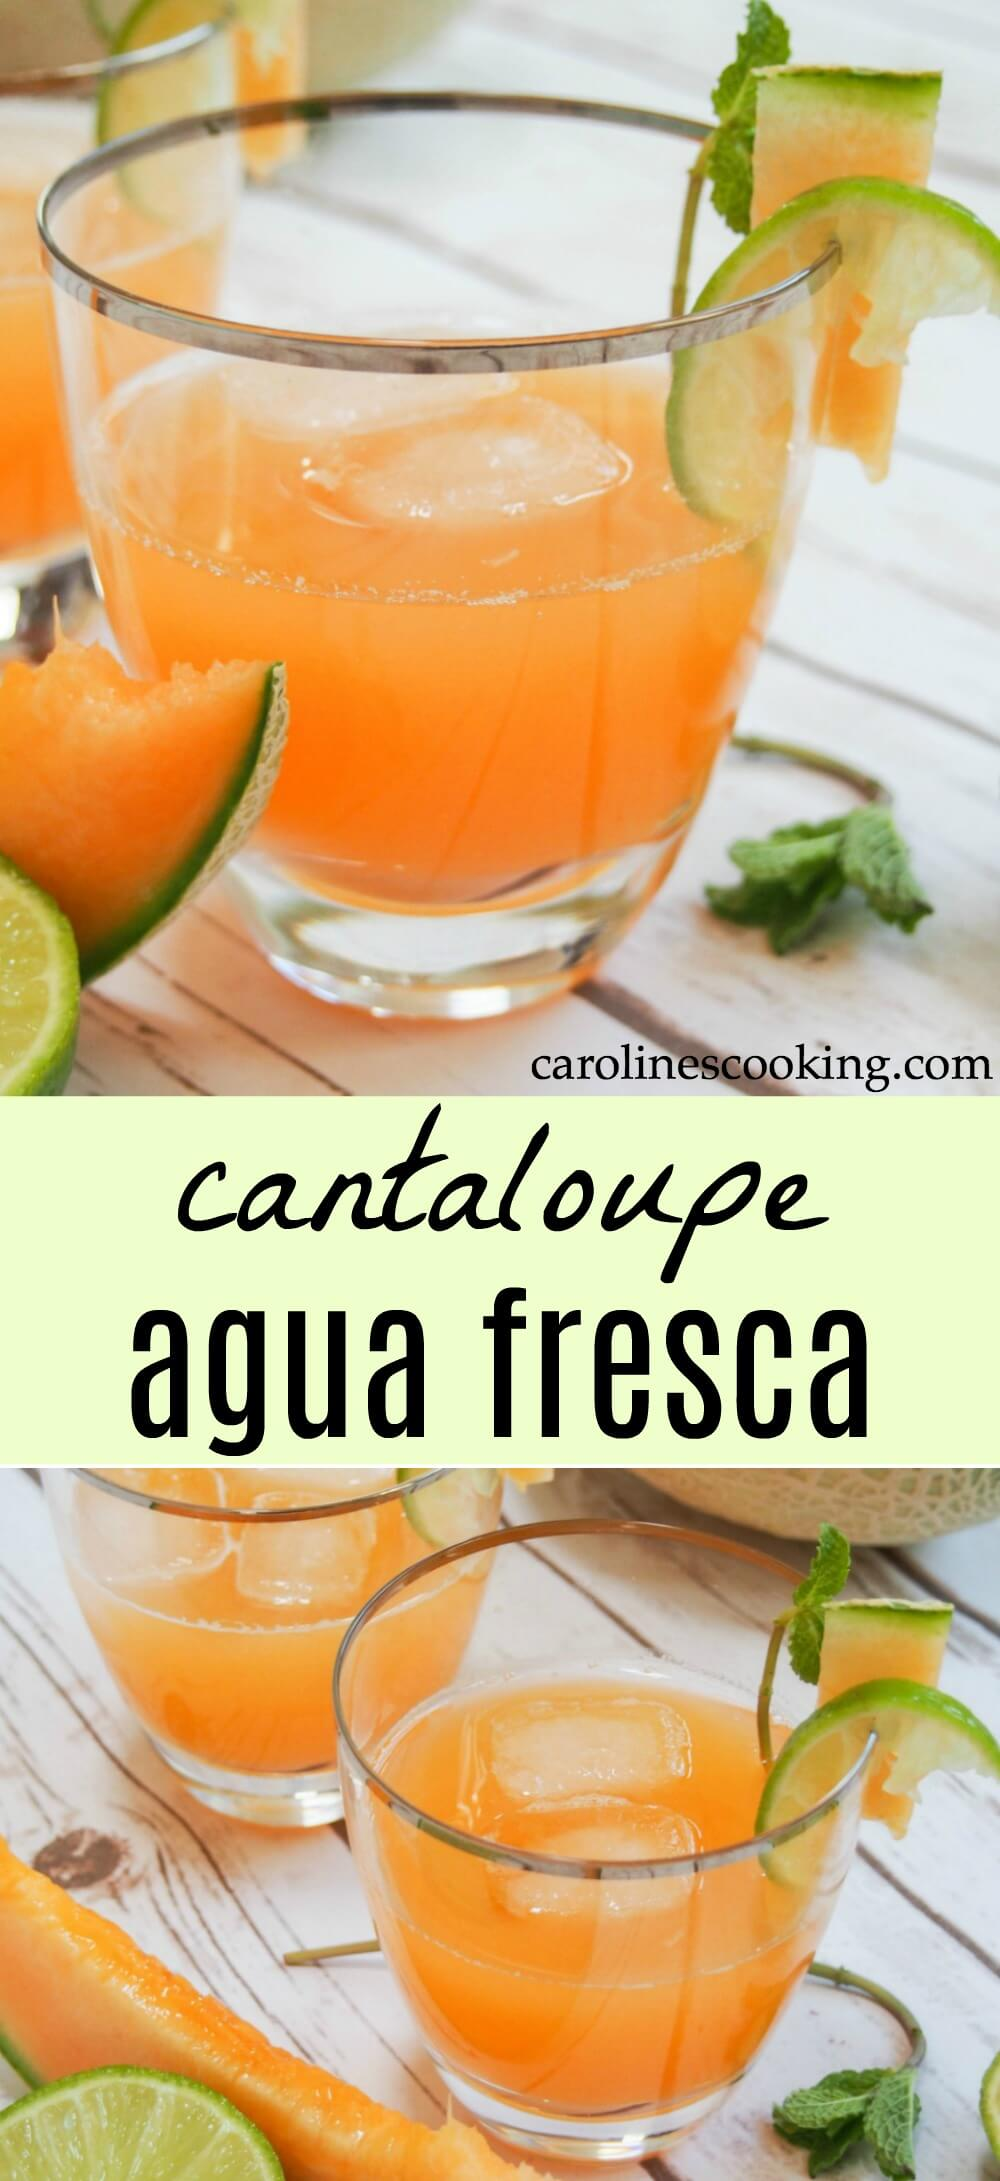 Cantaloupe agua fresca is easy to make and incredibly refreshing. Light and gently fruity, it's a family-friendly drink perfect for a warm day. All you need is cantaloupe, water and lime. It'll quench your thirst on a warm day and is a great, light option alongside a meal.